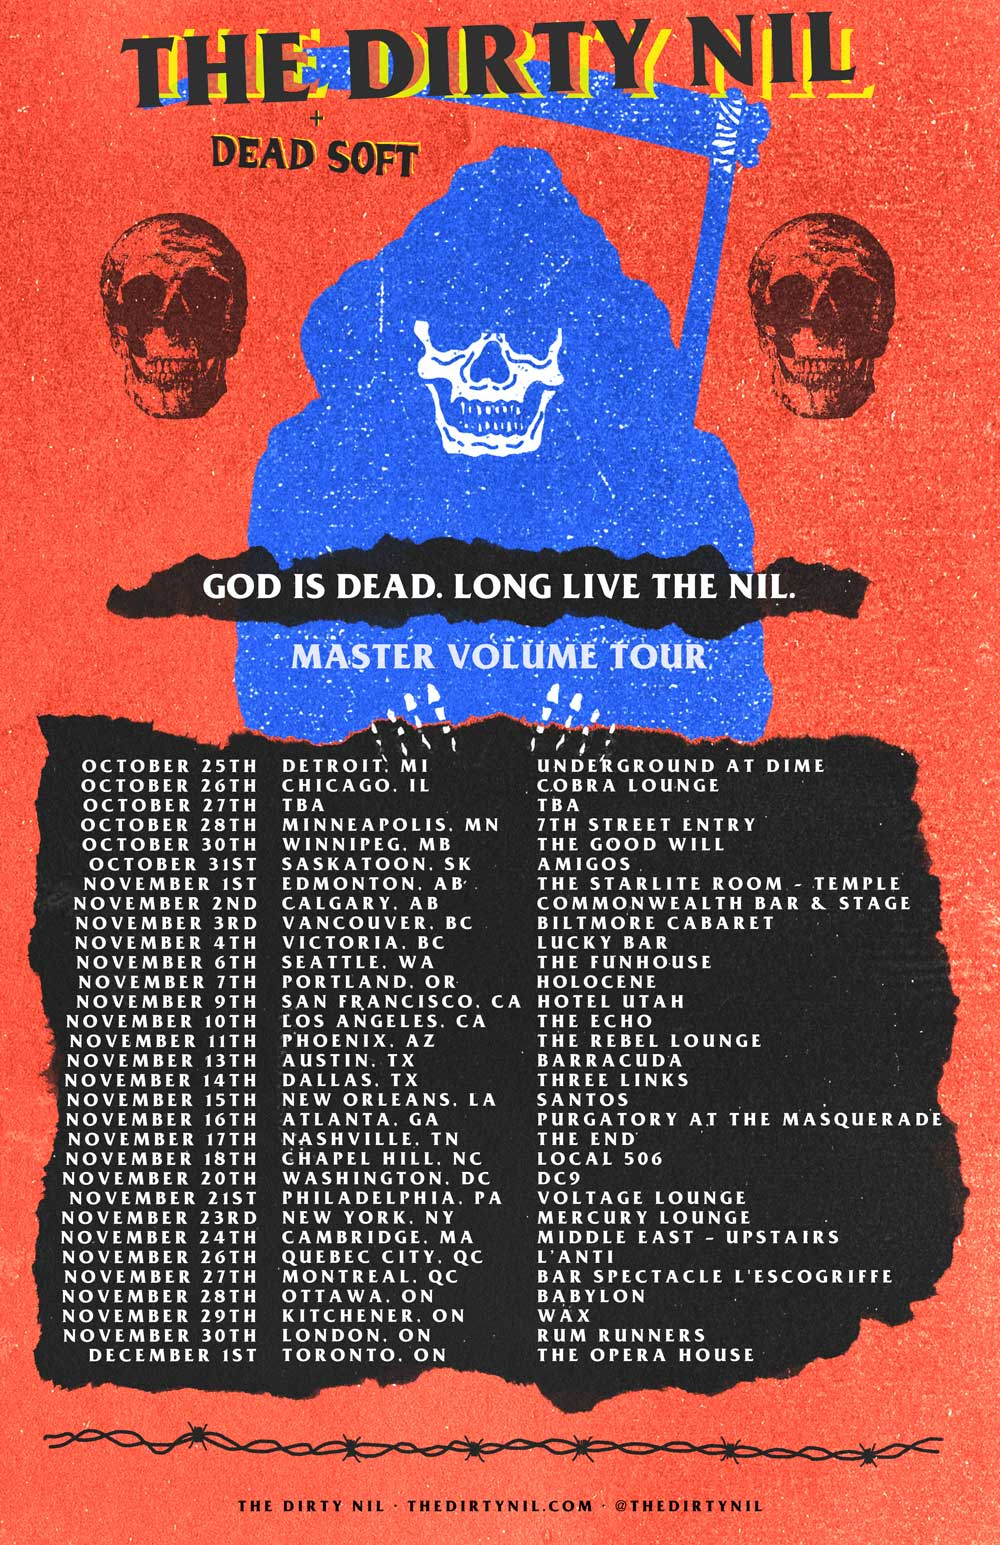 Dirty-Nil-2018-US-TOUR-FLYER-11X17-Color.jpg